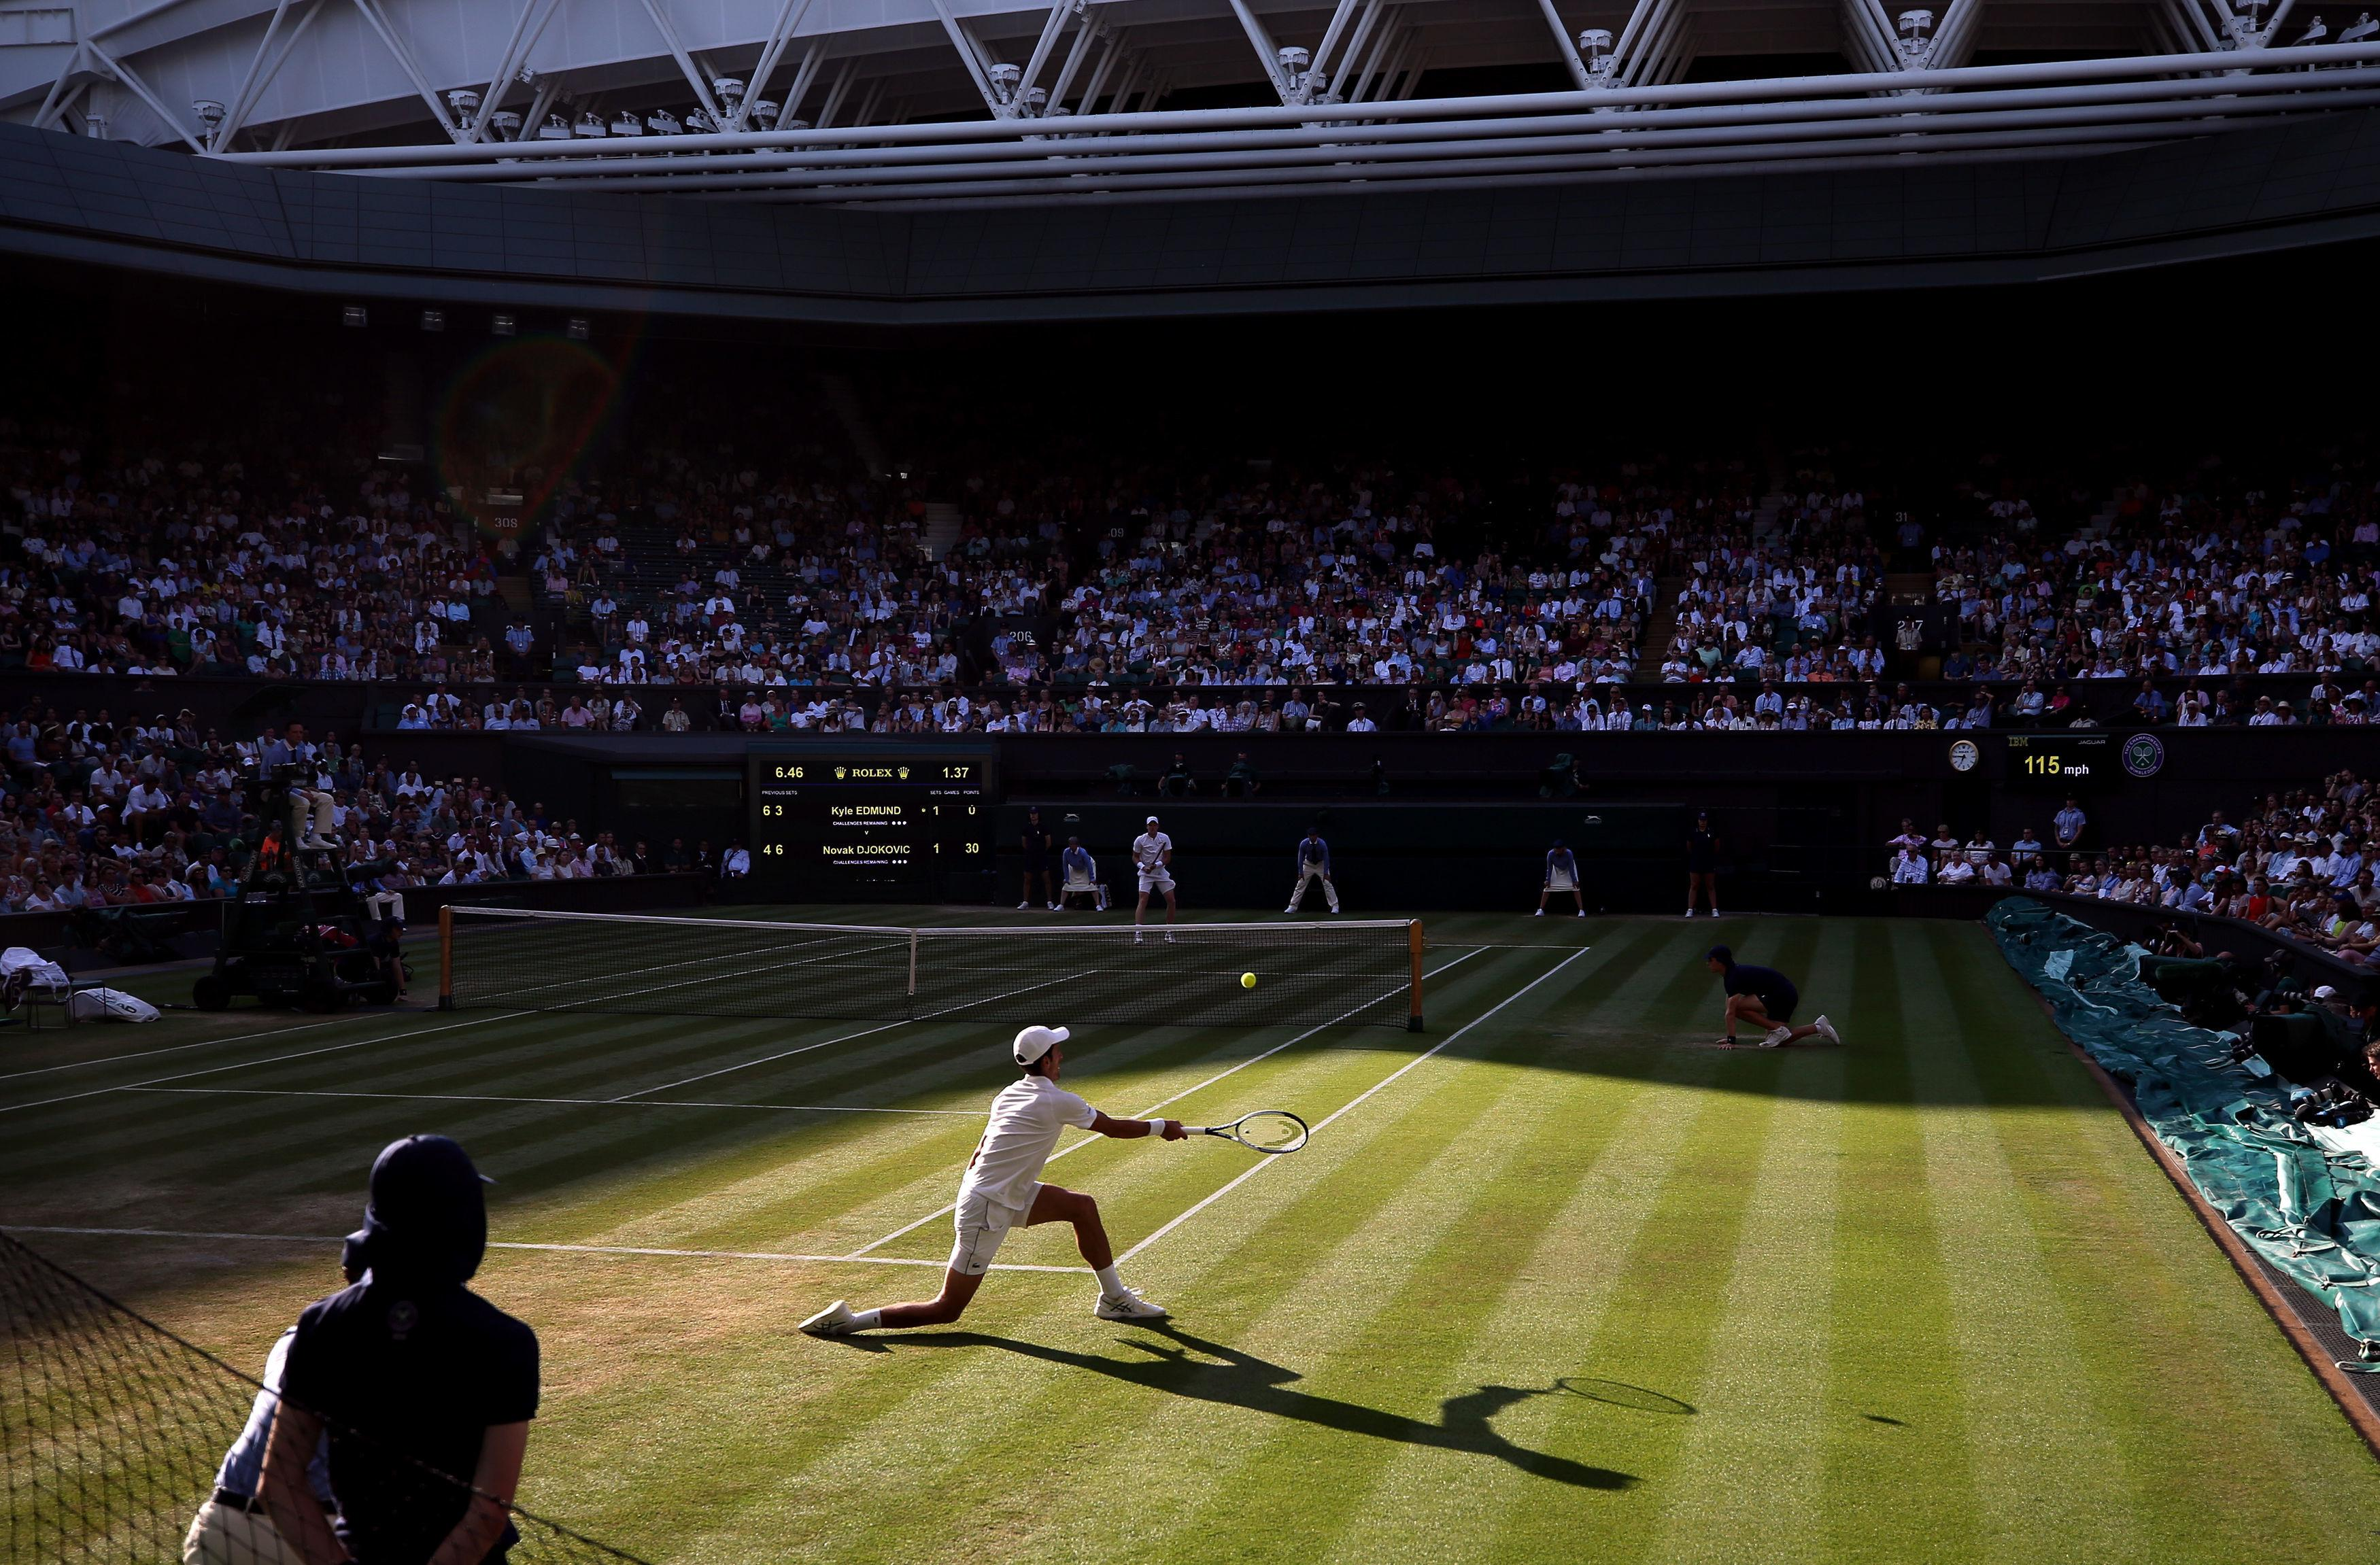 It was a roasting day on Centre Court and fans were treated to a cracking match